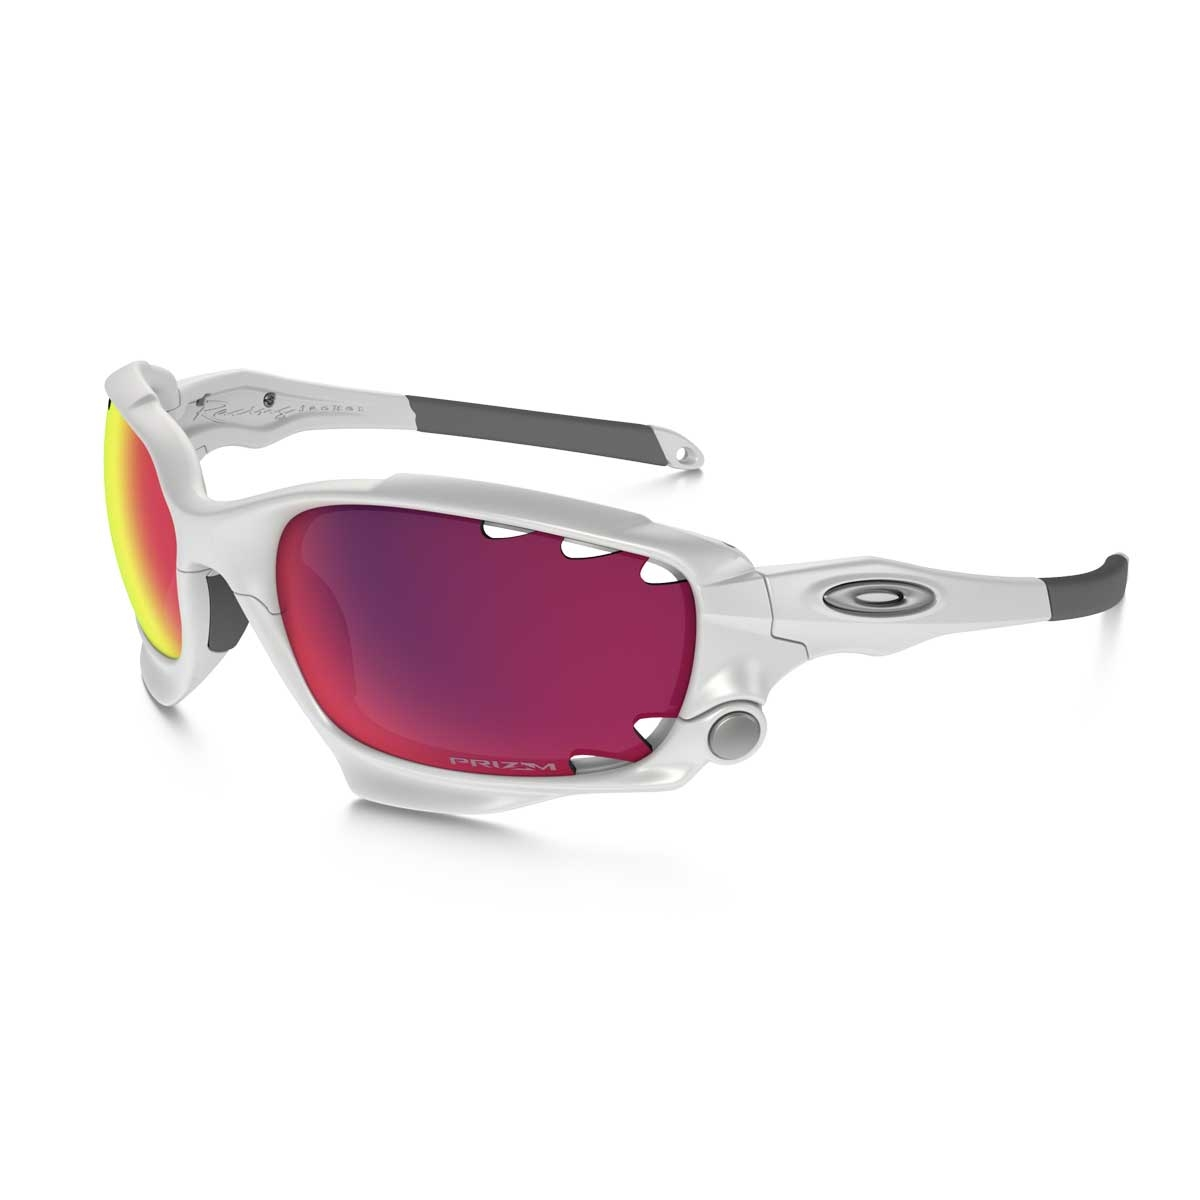 Image of Oakley Racing Jacket Vented Sunglasses - Polished White   Prizm  Road   Persimmon 118a80927b